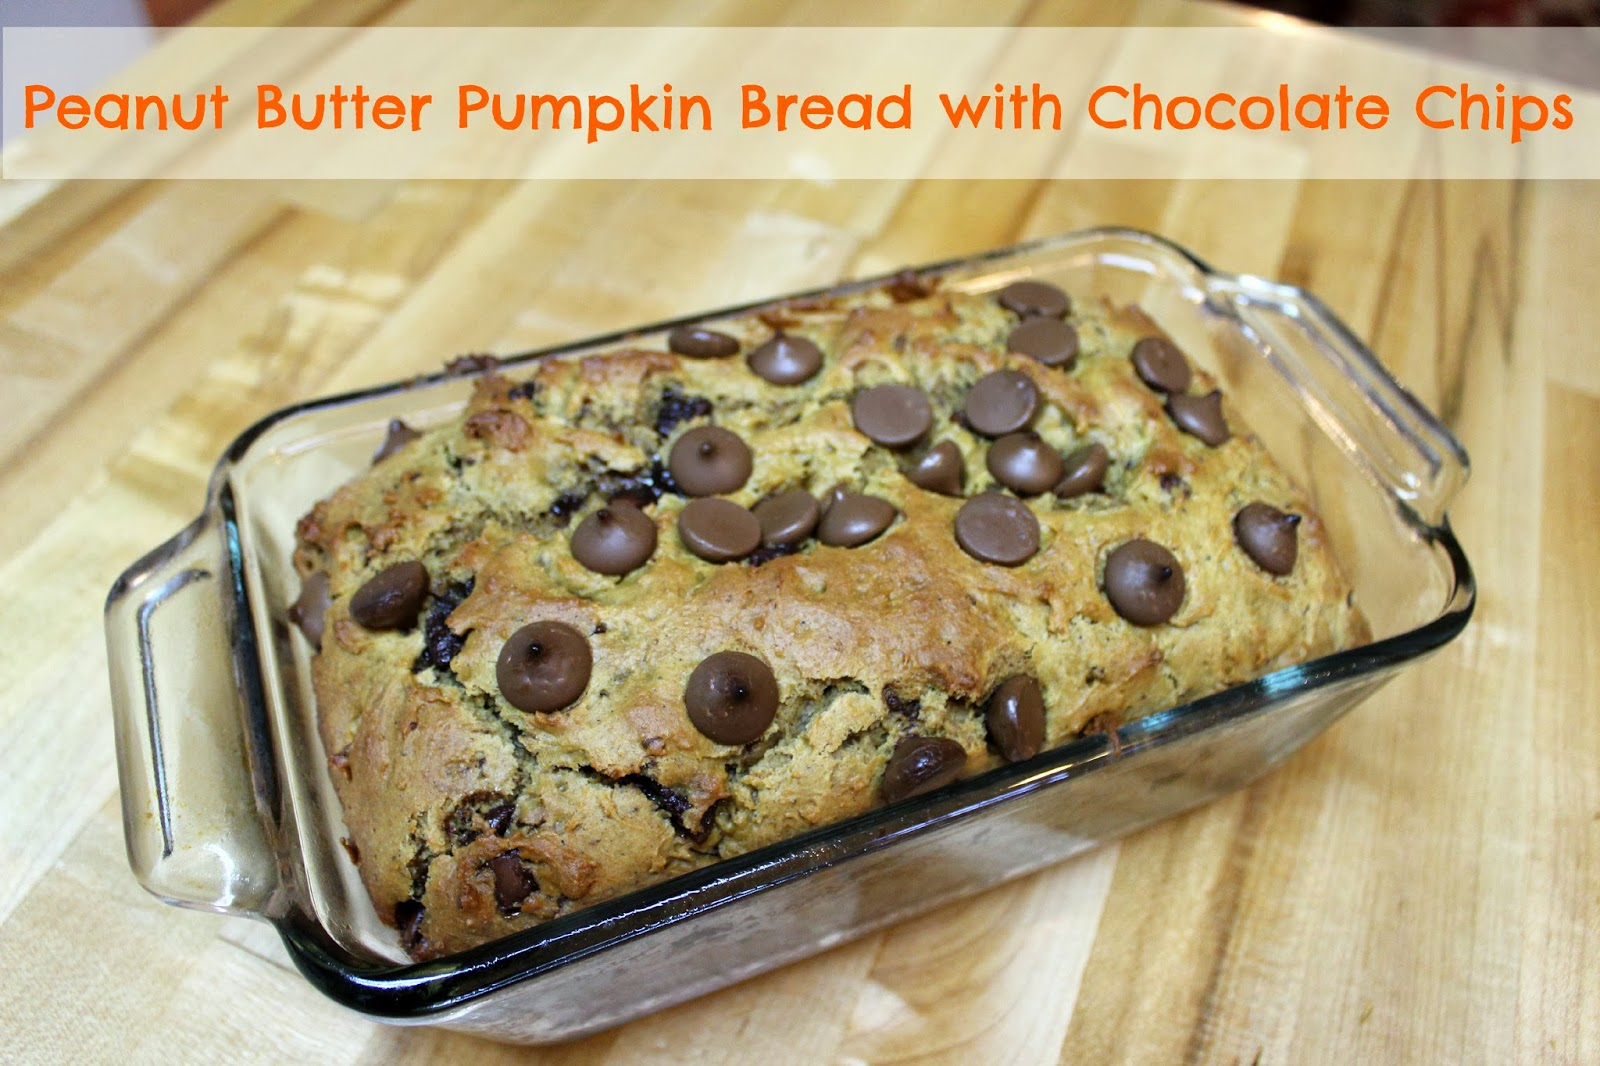 ... cream + french fries: Peanut Butter Pumpkin Bread with Chocolate Chips